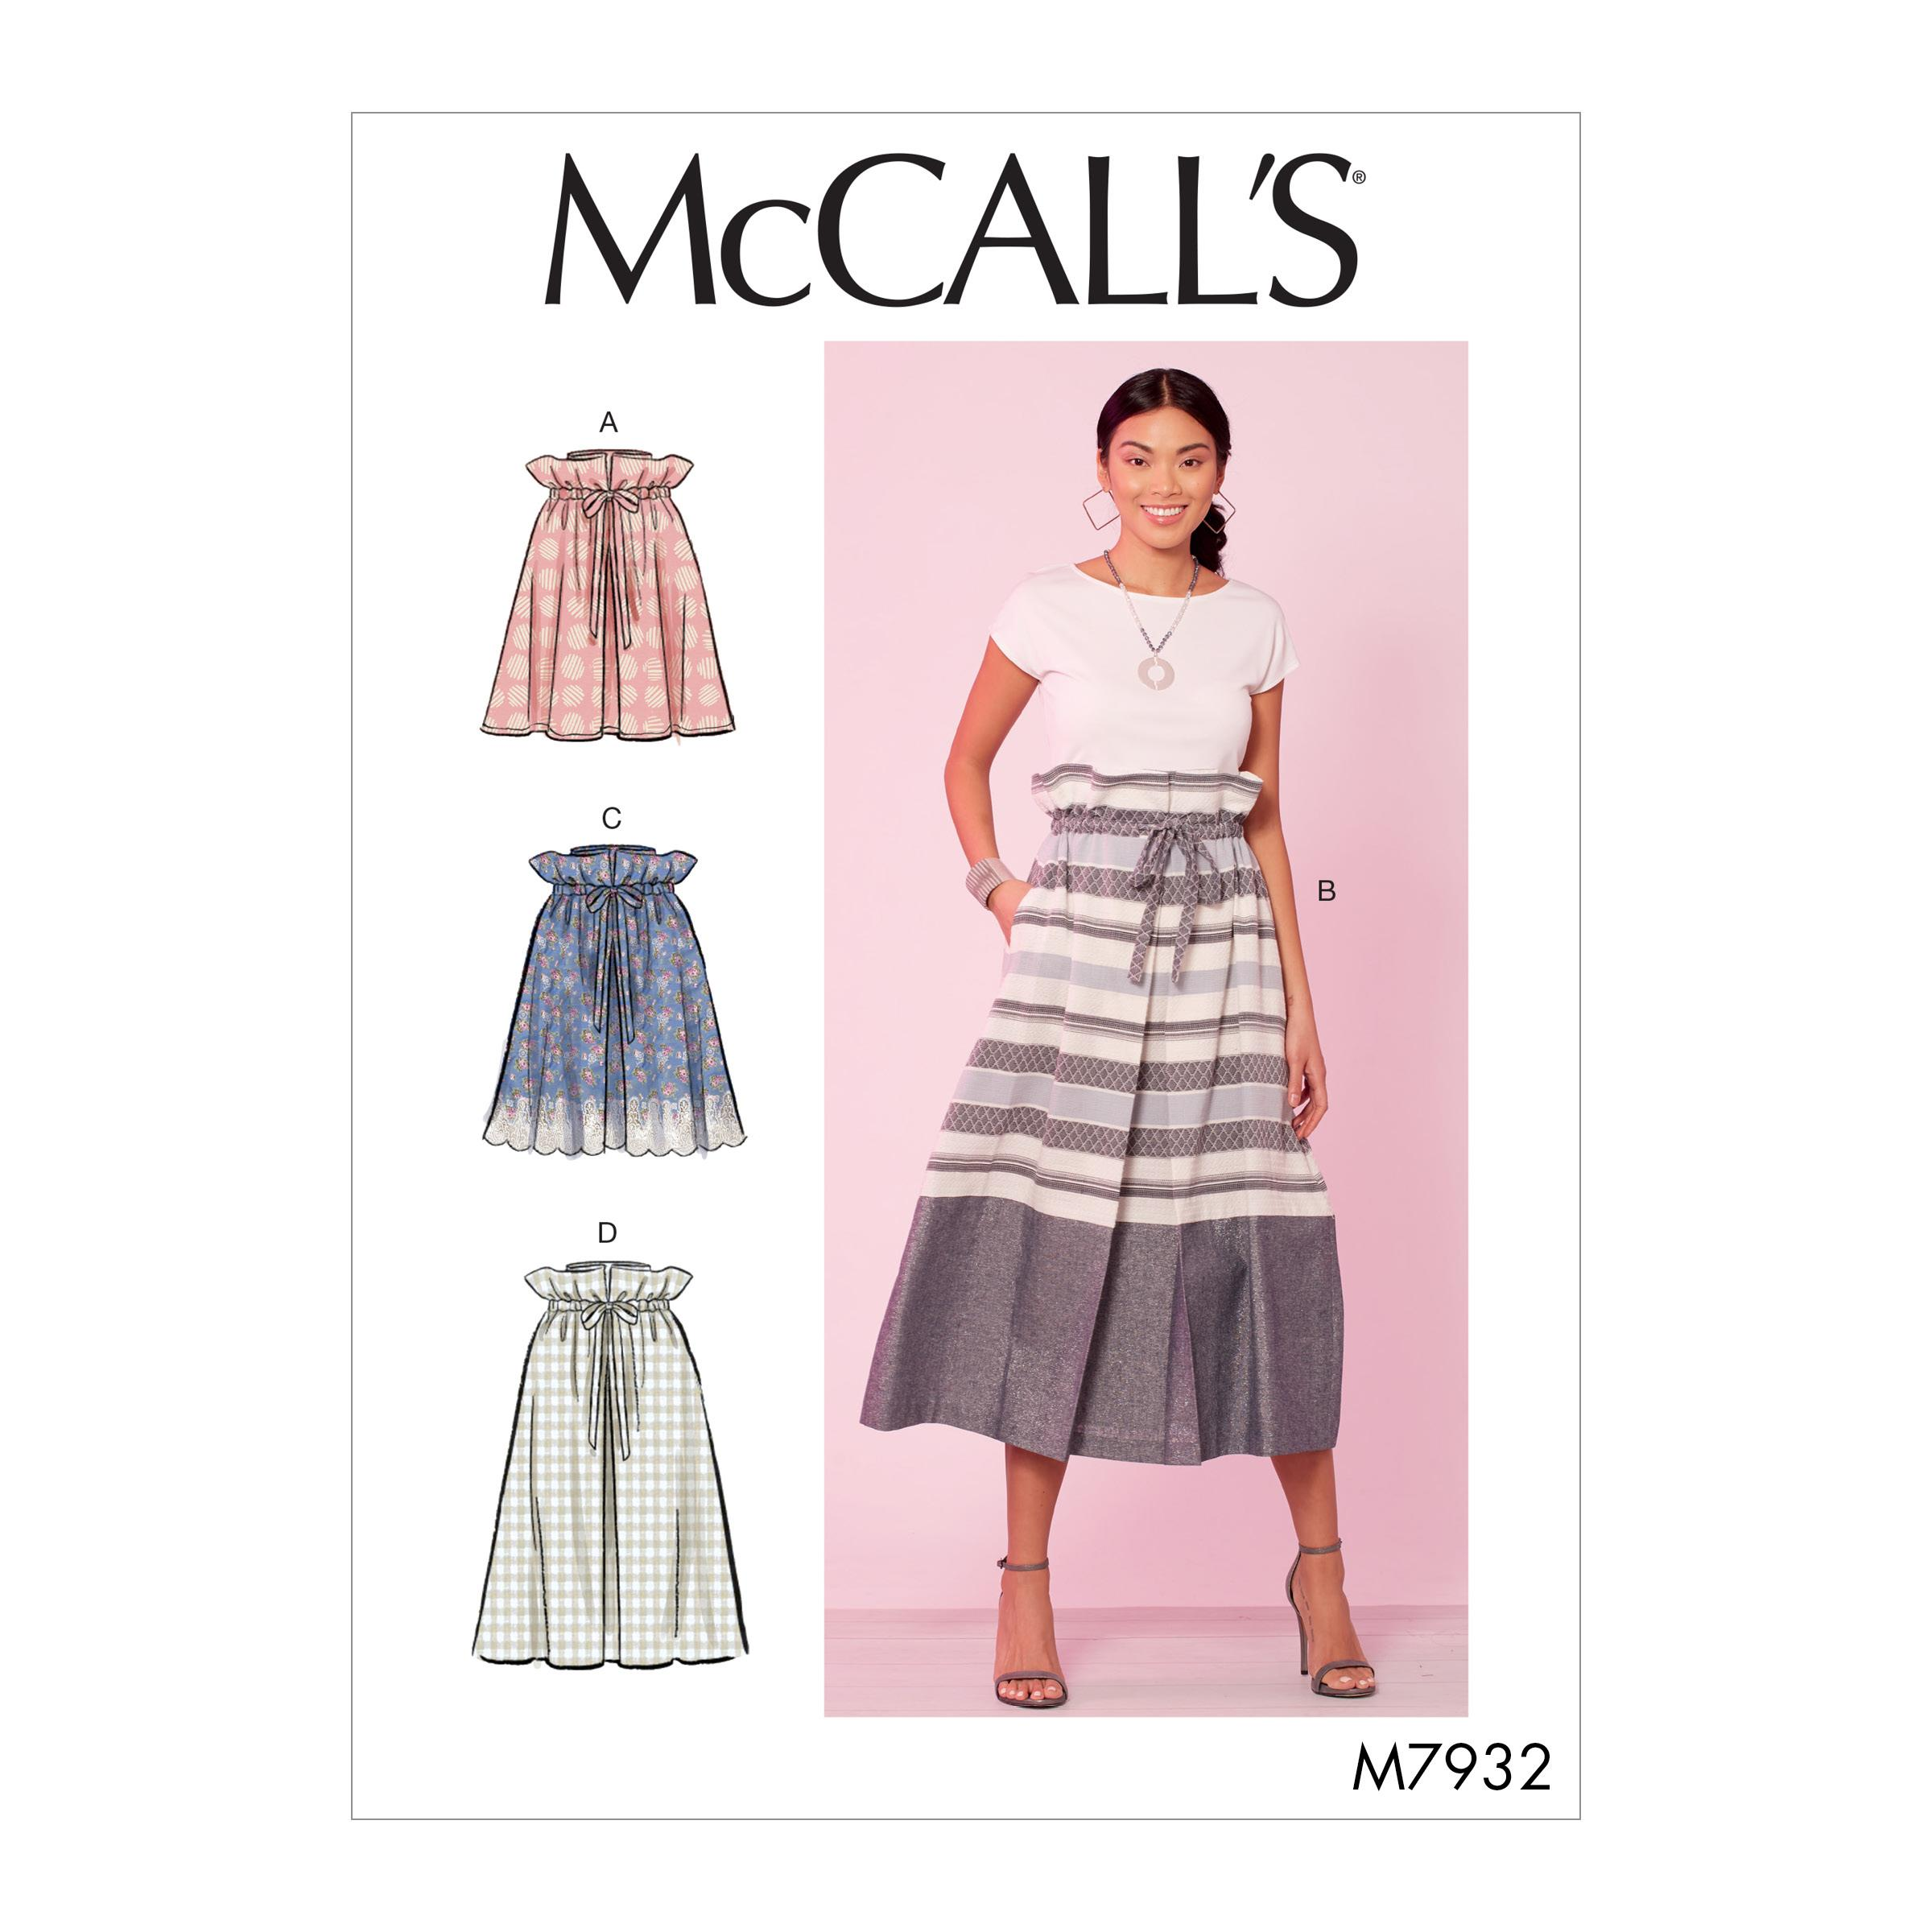 McCalls M7932 Misses Skirts